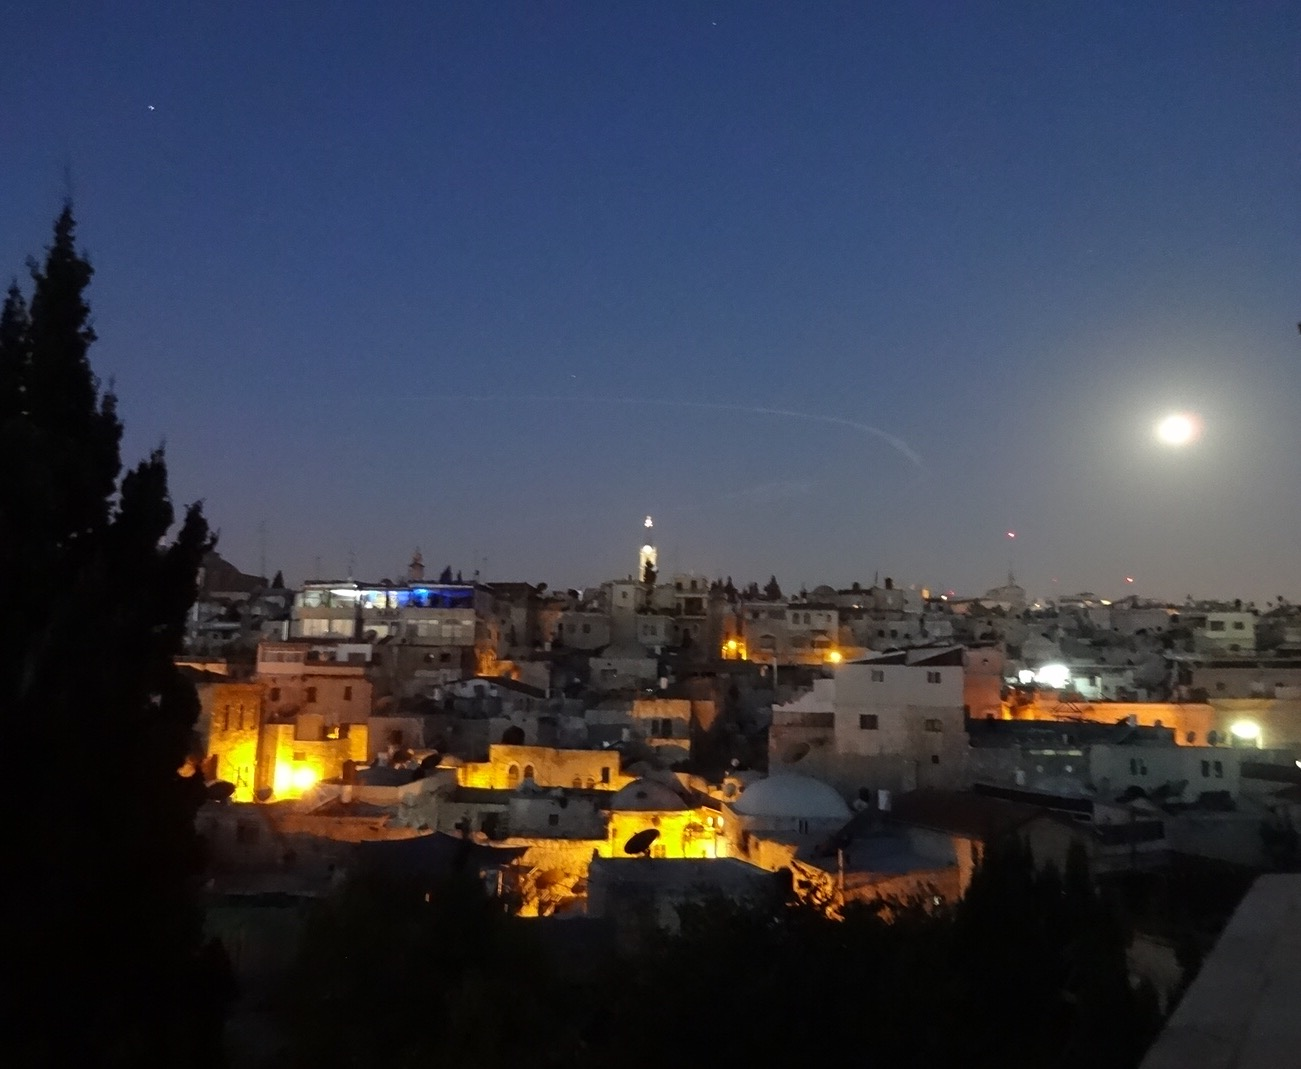 Jerusalem, sunrise/moonrise from my balcony at the Austrian Hospice